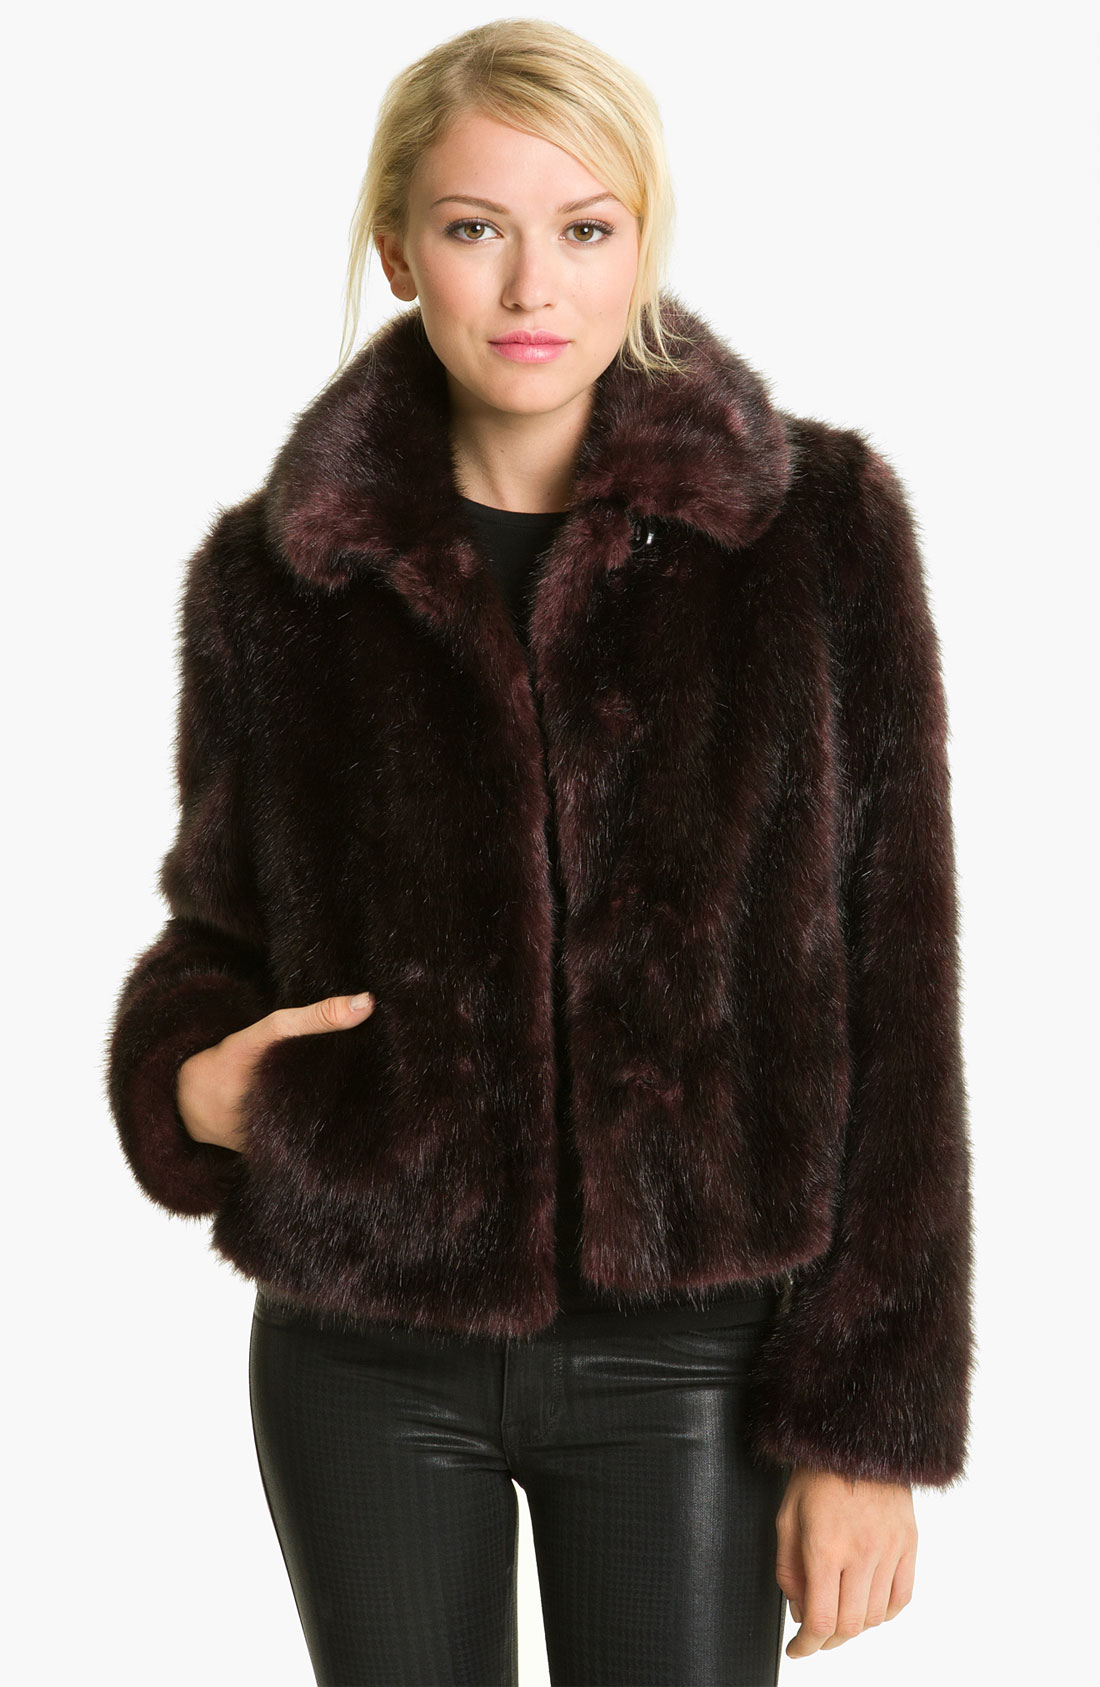 Find a great selection of women's fur coats & faux fur at metrdisk.cf Shop top brands like Trina Turk, Moose Knuckles & more. Free shipping & returns.